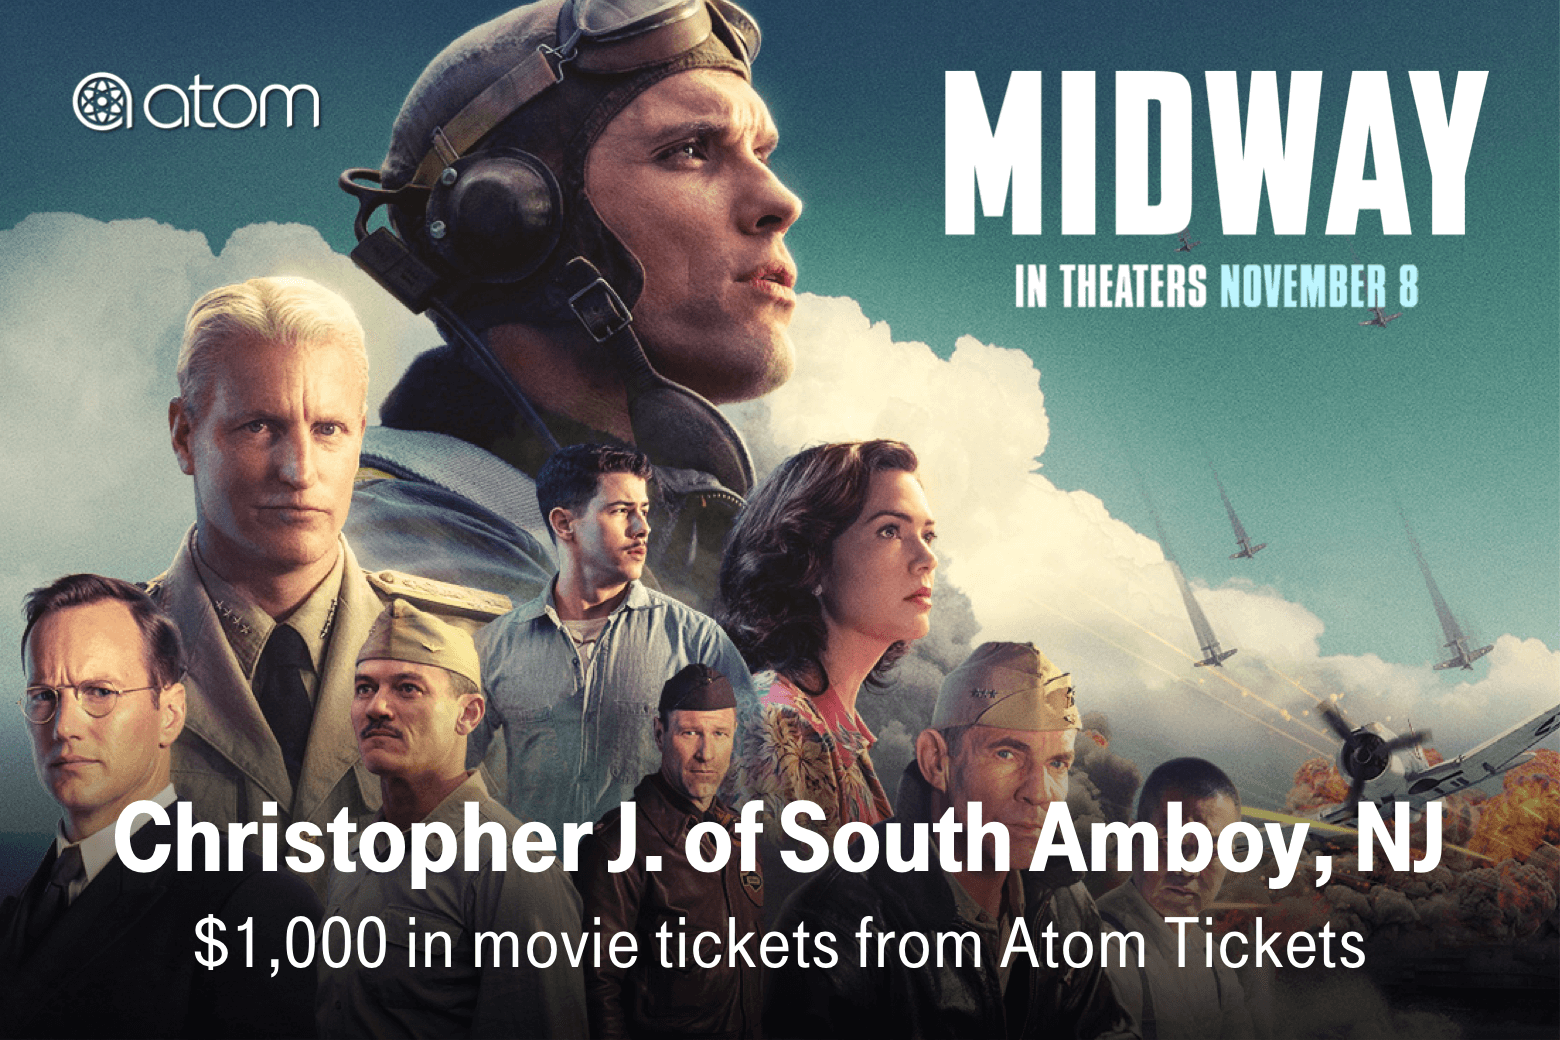 Atom. Midway. Christopher J. of South Amboy, NJ. $1,000 in movie tickets from Atom Tickets.